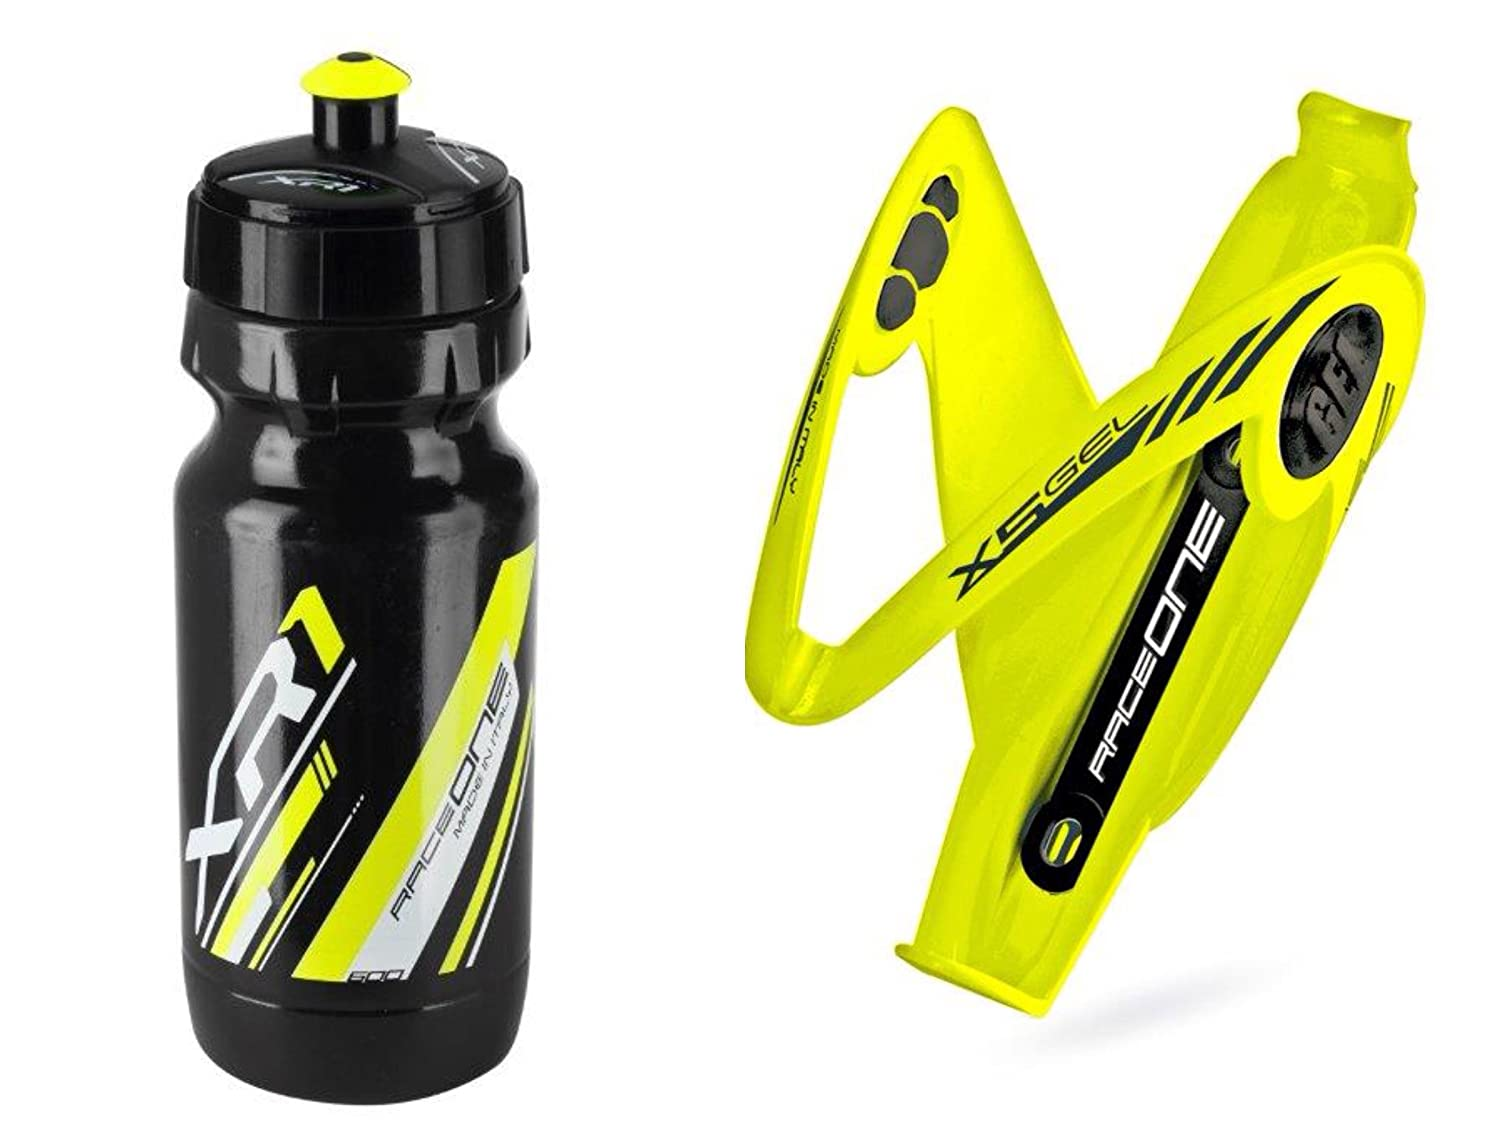 Raceone.it - Kit Race Duo X5 Gel (2 PCS): Porta Bidon X5 + Bidon de Ciclismo XR1 Bici Carrera de Ruta/Bicicleta de Montaña MTB/Gravel Bike. Color: Amarilo/Negro 100% Made IN Italy Raceone Srl